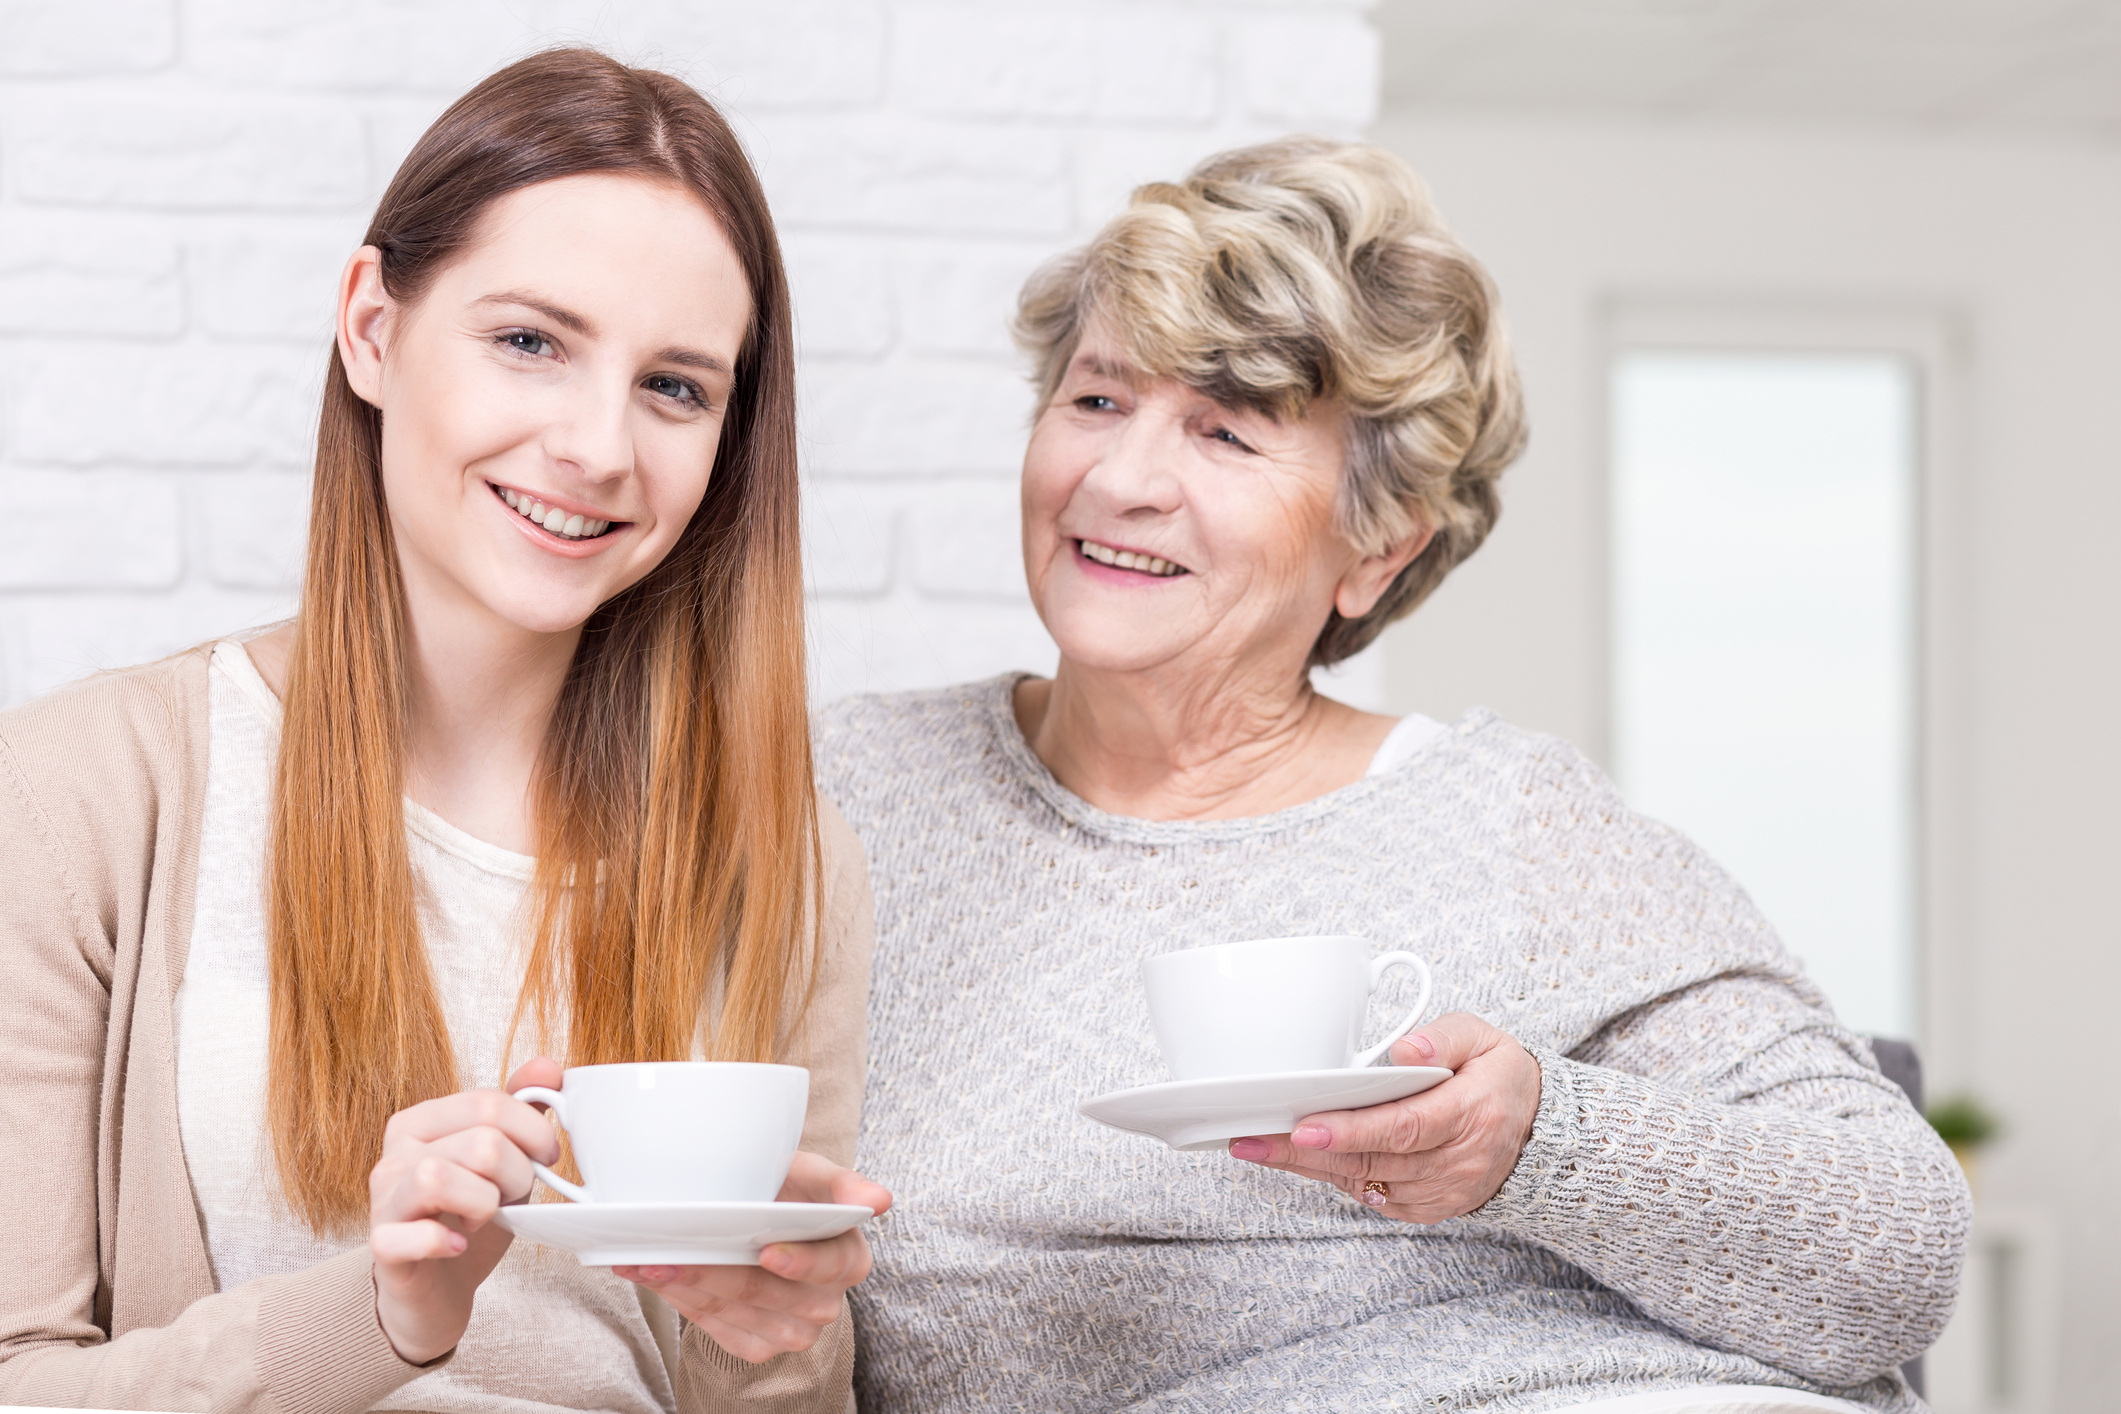 Shot of a young woman having a cup of tea with her grandma (Thinkstock/PA)